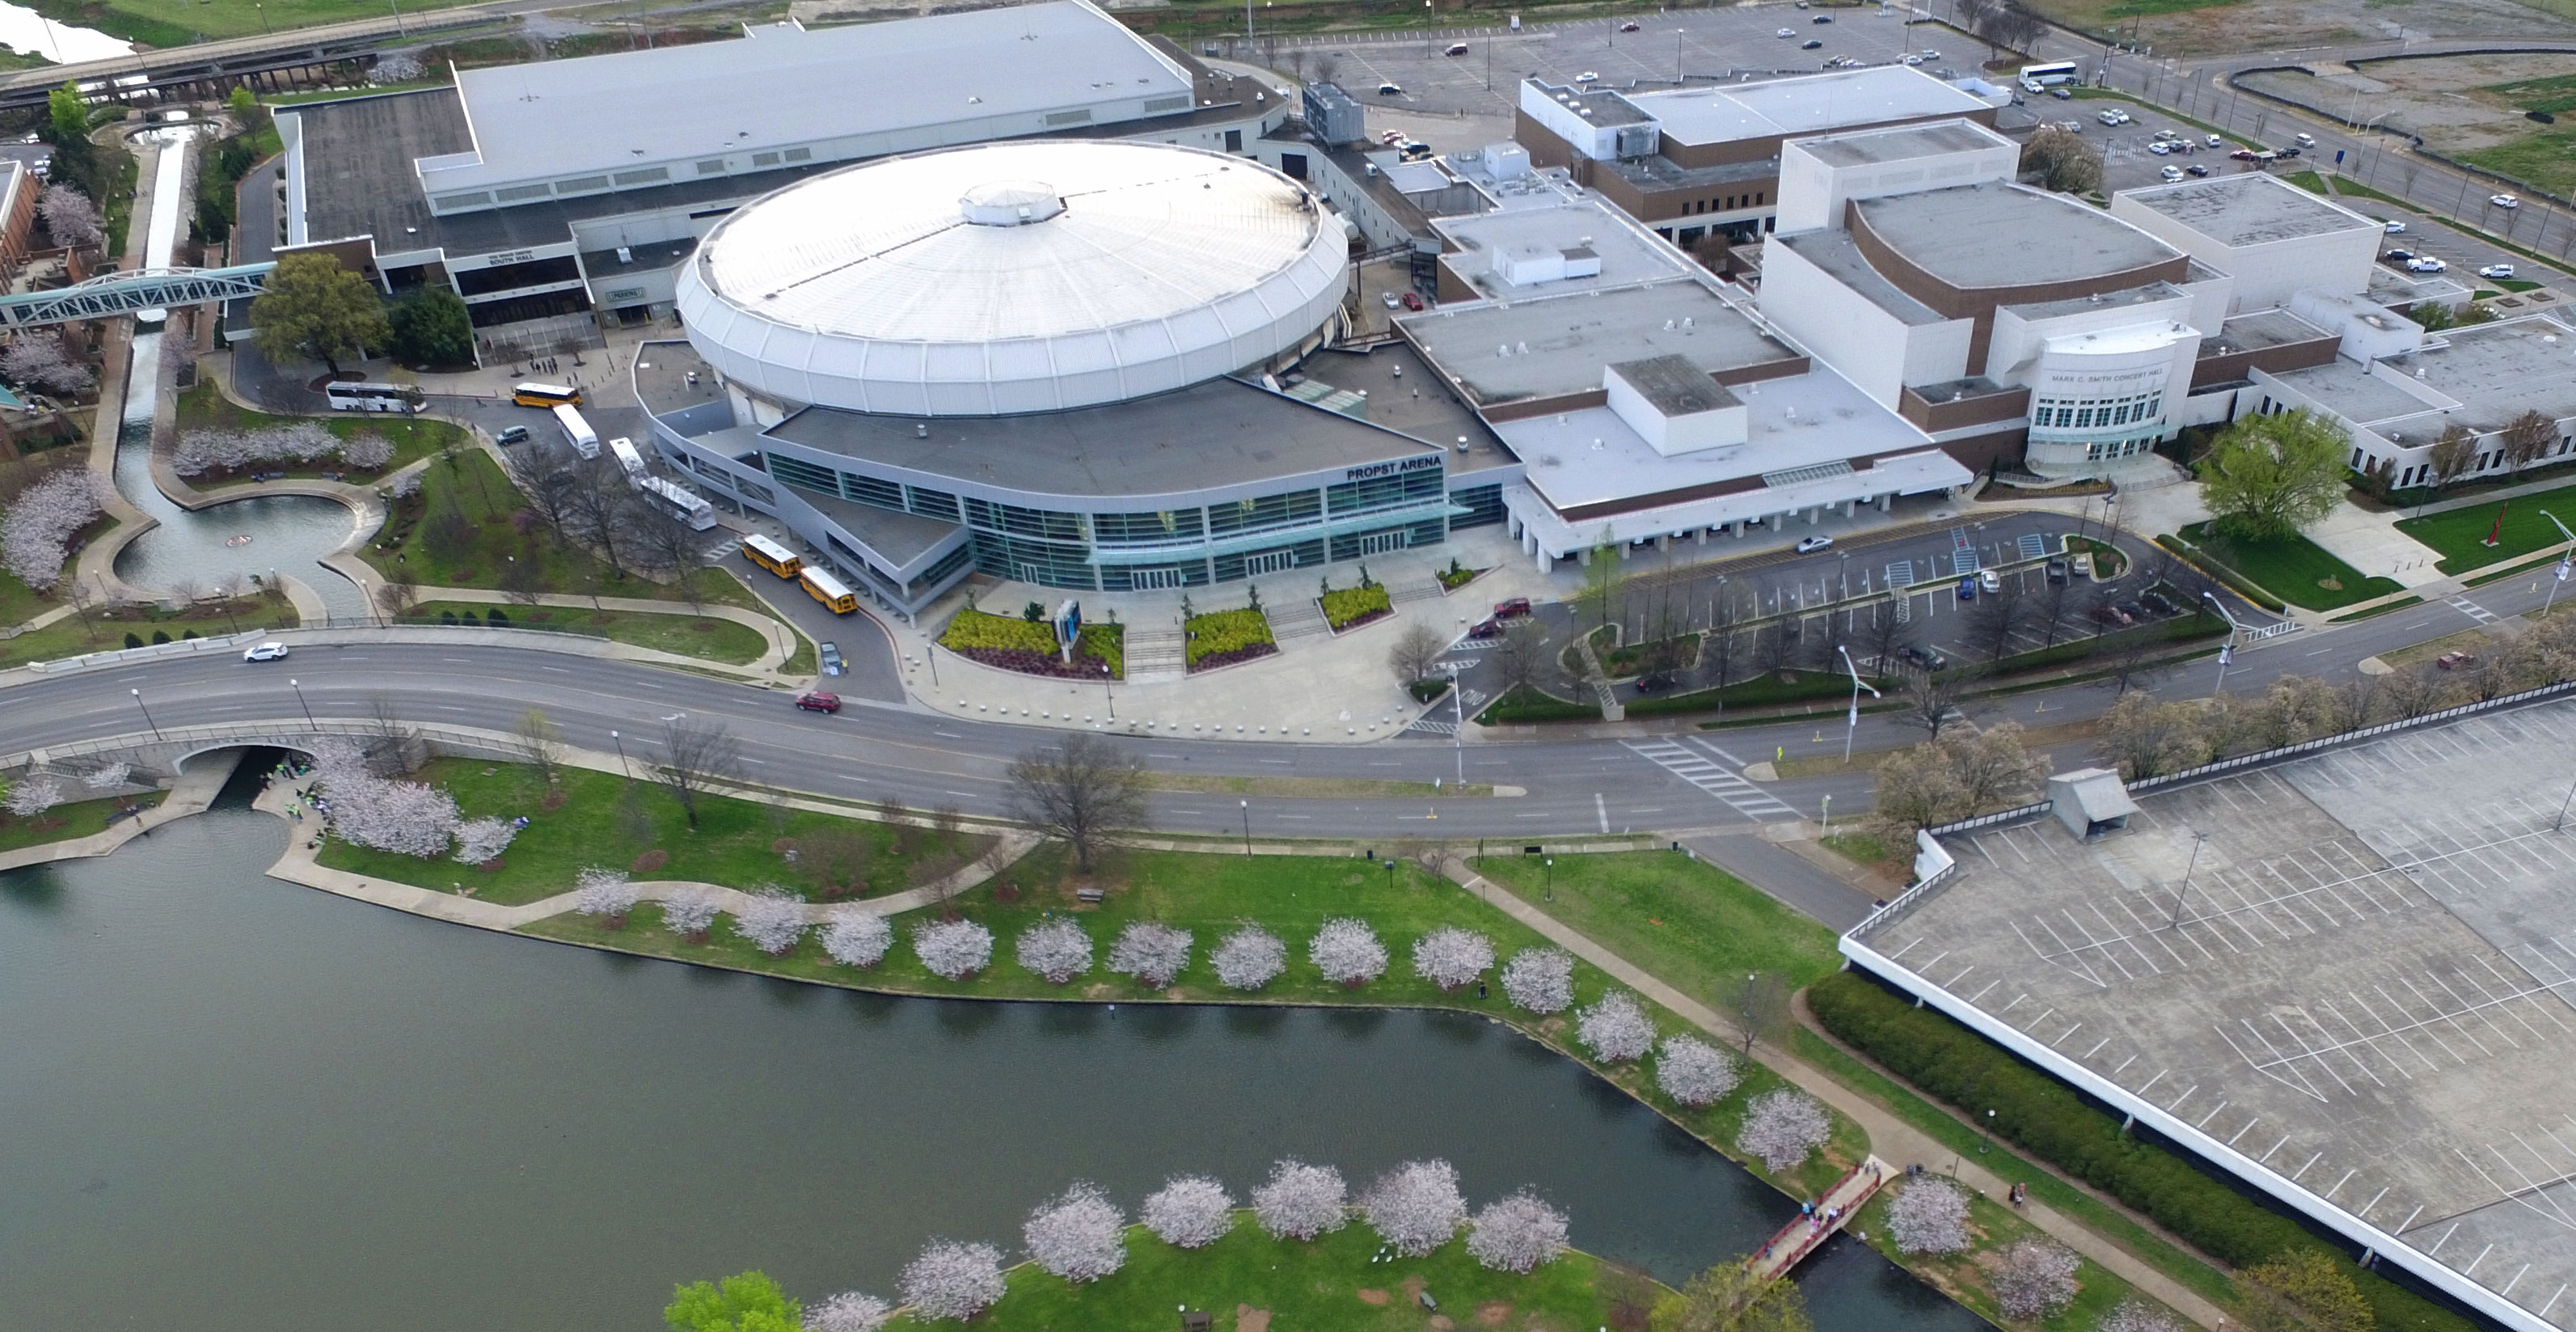 Aerial_view_of_Von_Braun_Center